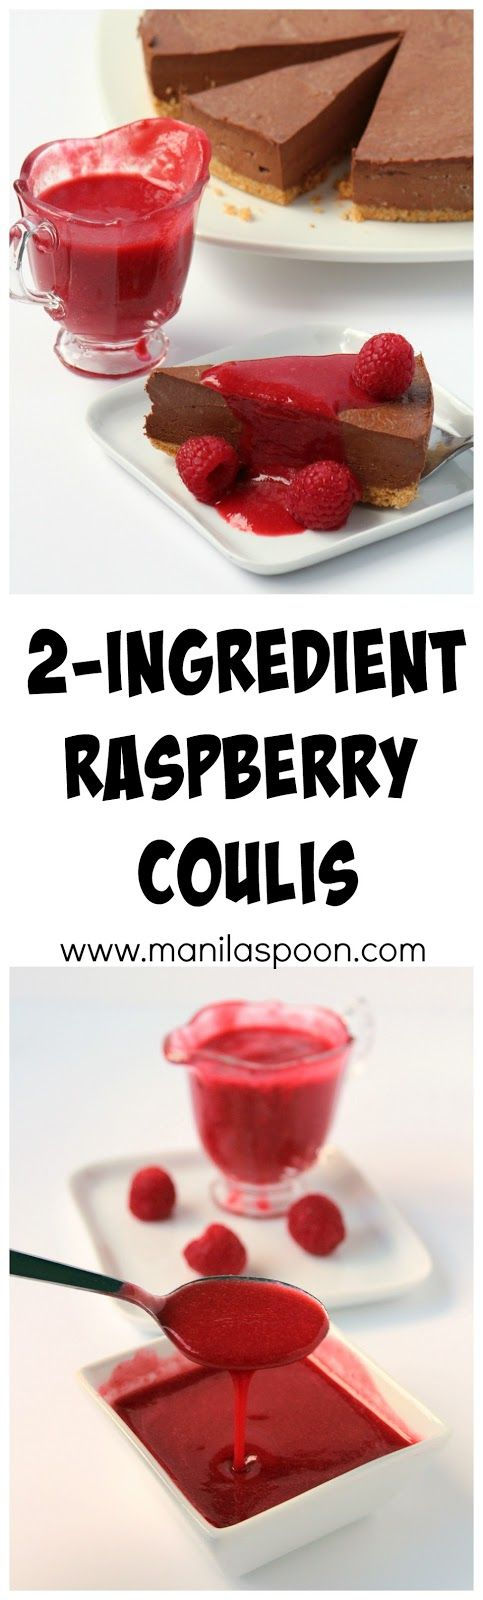 Need a delicious fruity topping for your dessert? This versatile, quick and easy 2-Ingredient Raspberry Coulis (sauce) is perfect for cheesecakes, ice creams, waffles, pancakes and so much more.